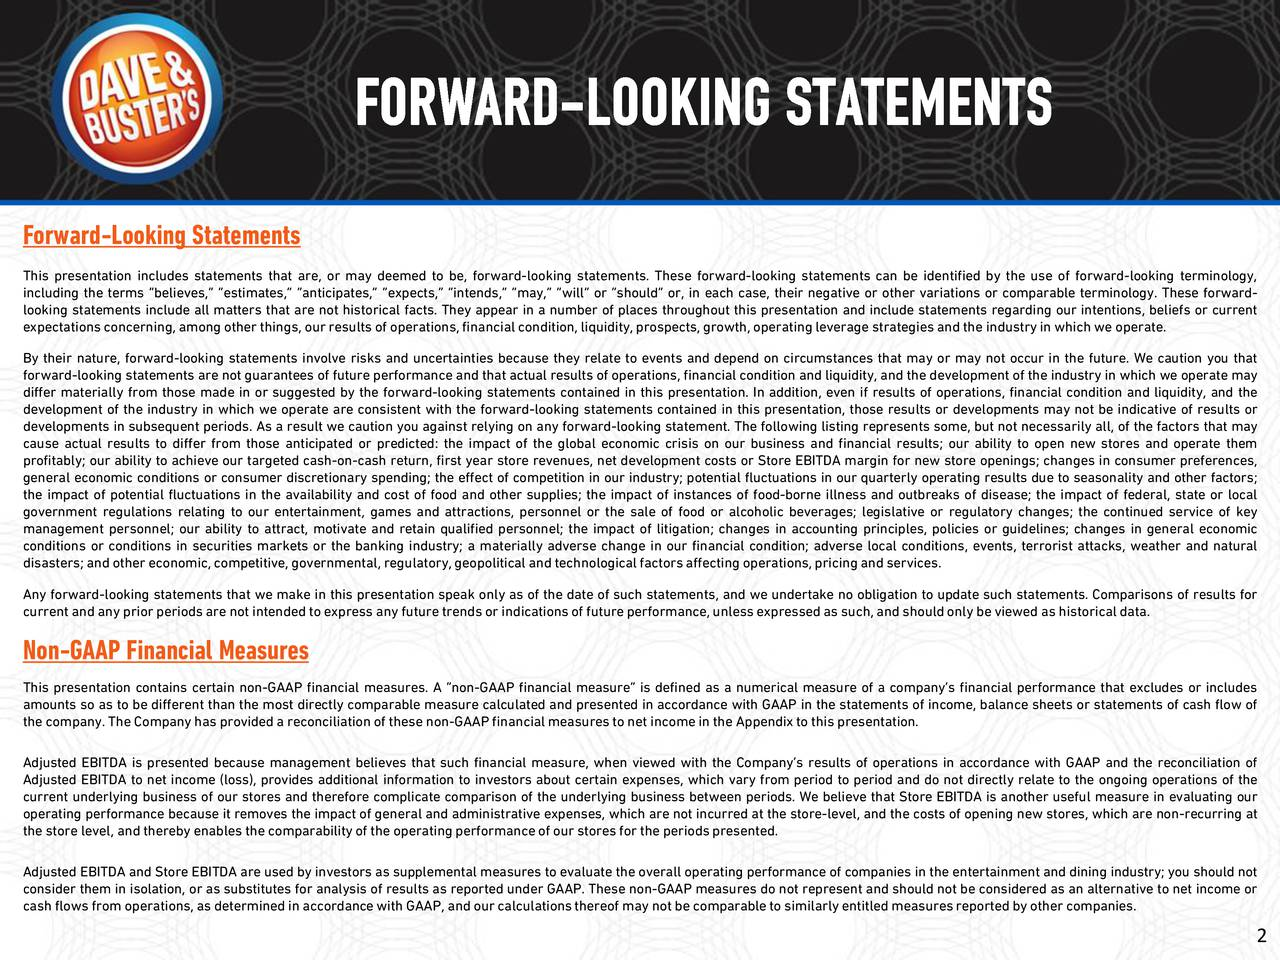 This presentation includes statements that are, or may deemed to be, forward-looking statements. These forward-looking statements can be identified by the use of forward-looking terminology, including the terms believes, estimates, anticipates, expects, intends, may, will or should or, in each case, their negative or other variations or comparable terminology. These forward- looking statements include all matters that are not historical facts. They appear in a number of places throughout this presentation and include statements regarding our intentions, beliefs or current expectationsconcerning,among other things, ourresults of operations,financial condition, liquidity, prospects, growth, operatingleverage strategies and the industryin which we operate. By their nature, forward-looking statements involve risks and uncertainties because they relate to events and depend on circumstances that may or may not occur in the future. We caution you that forward-looking statements are not guarantees of future performance and that actual results of operations, financial condition and liquidity, and the development of the industry in which we operate may differ materially from those made in or suggested by the forward-looking statements contained in this presentation. In addition, even if results of operations, financial condition and liquidity, and the development of the industry in which we operate are consistent with the forward-looking statements contained in this presentation, those results or developments may not be indicative of results or developments in subsequent periods. As a result we caution you against relying on any forward-looking statement. The following listing represents some, but not necessarily all, of the factors that may cause actual results to differ from those anticipated or predicted: the impact of the global economic crisis on our business and financial results; our ability to open new stores and operate them profitably; our ability to achieve our targeted cash-on-cash return, first year store revenues, net development costs or Store EBITDA margin for new store openings; changes in consumer preferences, general economic conditions or consumer discretionary spending; the effect of competition in our industry; potential fluctuations in our quarterly operating results due to seasonality and other factors; the impact of potential fluctuations in the availability and cost of food and other supplies; the impact of instances of food-borne illness and outbreaks of disease; the impact of federal, state or local government regulations relating to our entertainment, games and attractions, personnel or the sale of food or alcoholic beverages; legislative or regulatory changes; the continued service of key management personnel; our ability to attract, motivate and retain qualified personnel; the impact of litigation; changes in accounting principles, policies or guidelines; changes in general economic conditions or conditions in securities markets or the banking industry; a materially adverse change in our financial condition; adverse local conditions, events, terrorist attacks, weather and natural disasters;and other economic,competitive, governmental, regulatory, geopolitical and technological factorsaffecting operations,pricingand services. Any forward-looking statements that we make in this presentation speak only as of the date of such statements, and we undertake no obligation to update such statements. Comparisons of results for currentand any priorperiodsare not intended to express any future trends or indicationsof futureperformance,unless expressedas such,and shouldonly be viewed as historical data. Non-GAAP Financial Measures This presentation contains certain non-GAAP financial measures. A non-GAAP financial measure is defined as a numerical measure of a companys financial performance that excludes or includes amounts so as to be different than the most directly comparable measure calculated and presented in accordance with GAAP in the statements of income, balance sheets or statements of cash flow of the company.The Companyhas provideda reconciliationof these non-GAAP financialmeasures to net incomein the Appendixto this presentation. Adjusted EBITDA is presented because management believes that such financial measure, when viewed with the Companys results of operations in accordance with GAAP and the reconciliation of Adjusted EBITDA to net income (loss), provides additional information to investors about certain expenses, which vary from period to period and do not directly relate to the ongoing operations of the current underlying business of our stores and therefore complicate comparison of the underlying business between periods. We believe that Store EBITDA is another useful measure in evaluating our operating performance because it removes the impact of general and administrative expenses, which are not incurred at the store-level, and the costs of opening new stores, which are non-recurring at the store level, and thereby enables the comparability of the operatingperformanceof our stores for the periodspresented. Adjusted EBITDA and Store EBITDA are used by investors as supplemental measures to evaluate the overall operating performance of companies in the entertainment and dining industry; you should not consider them in isolation, or as substitutes for analysis of results as reported under GAAP. These non-GAAP measures do not represent and should not be considered as an alternative to net income or cash flows from operations, as determinedin accordancewith GAAP, and ourcalculationsthereof may not be comparableto similarlyentitled measuresreported by other companies. 2